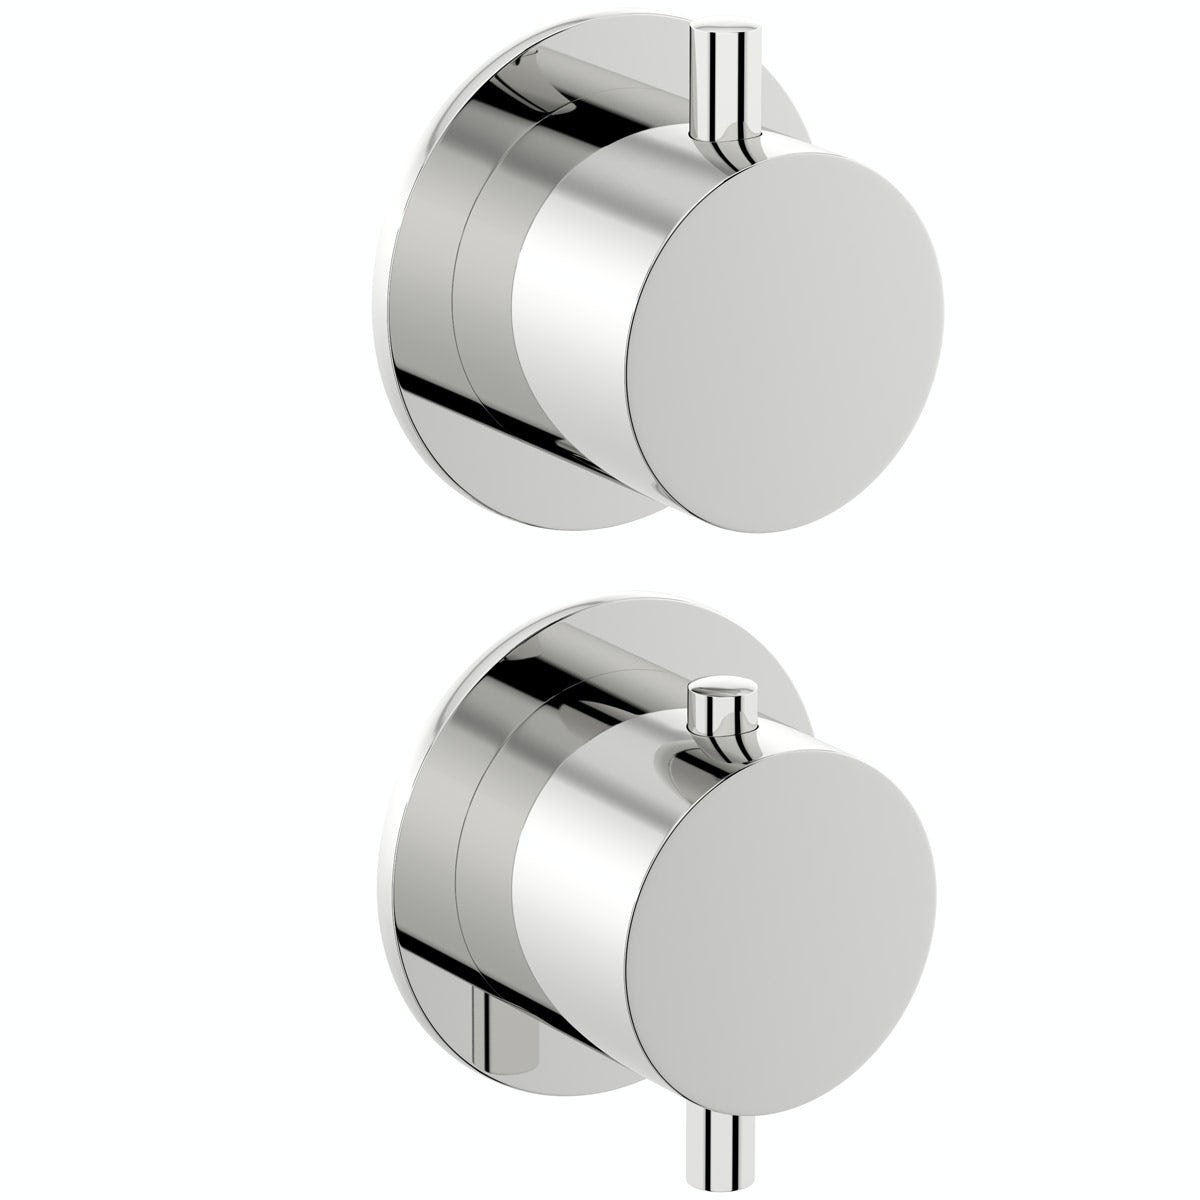 Mode Hardy round twin thermostatic shower valve with diverter